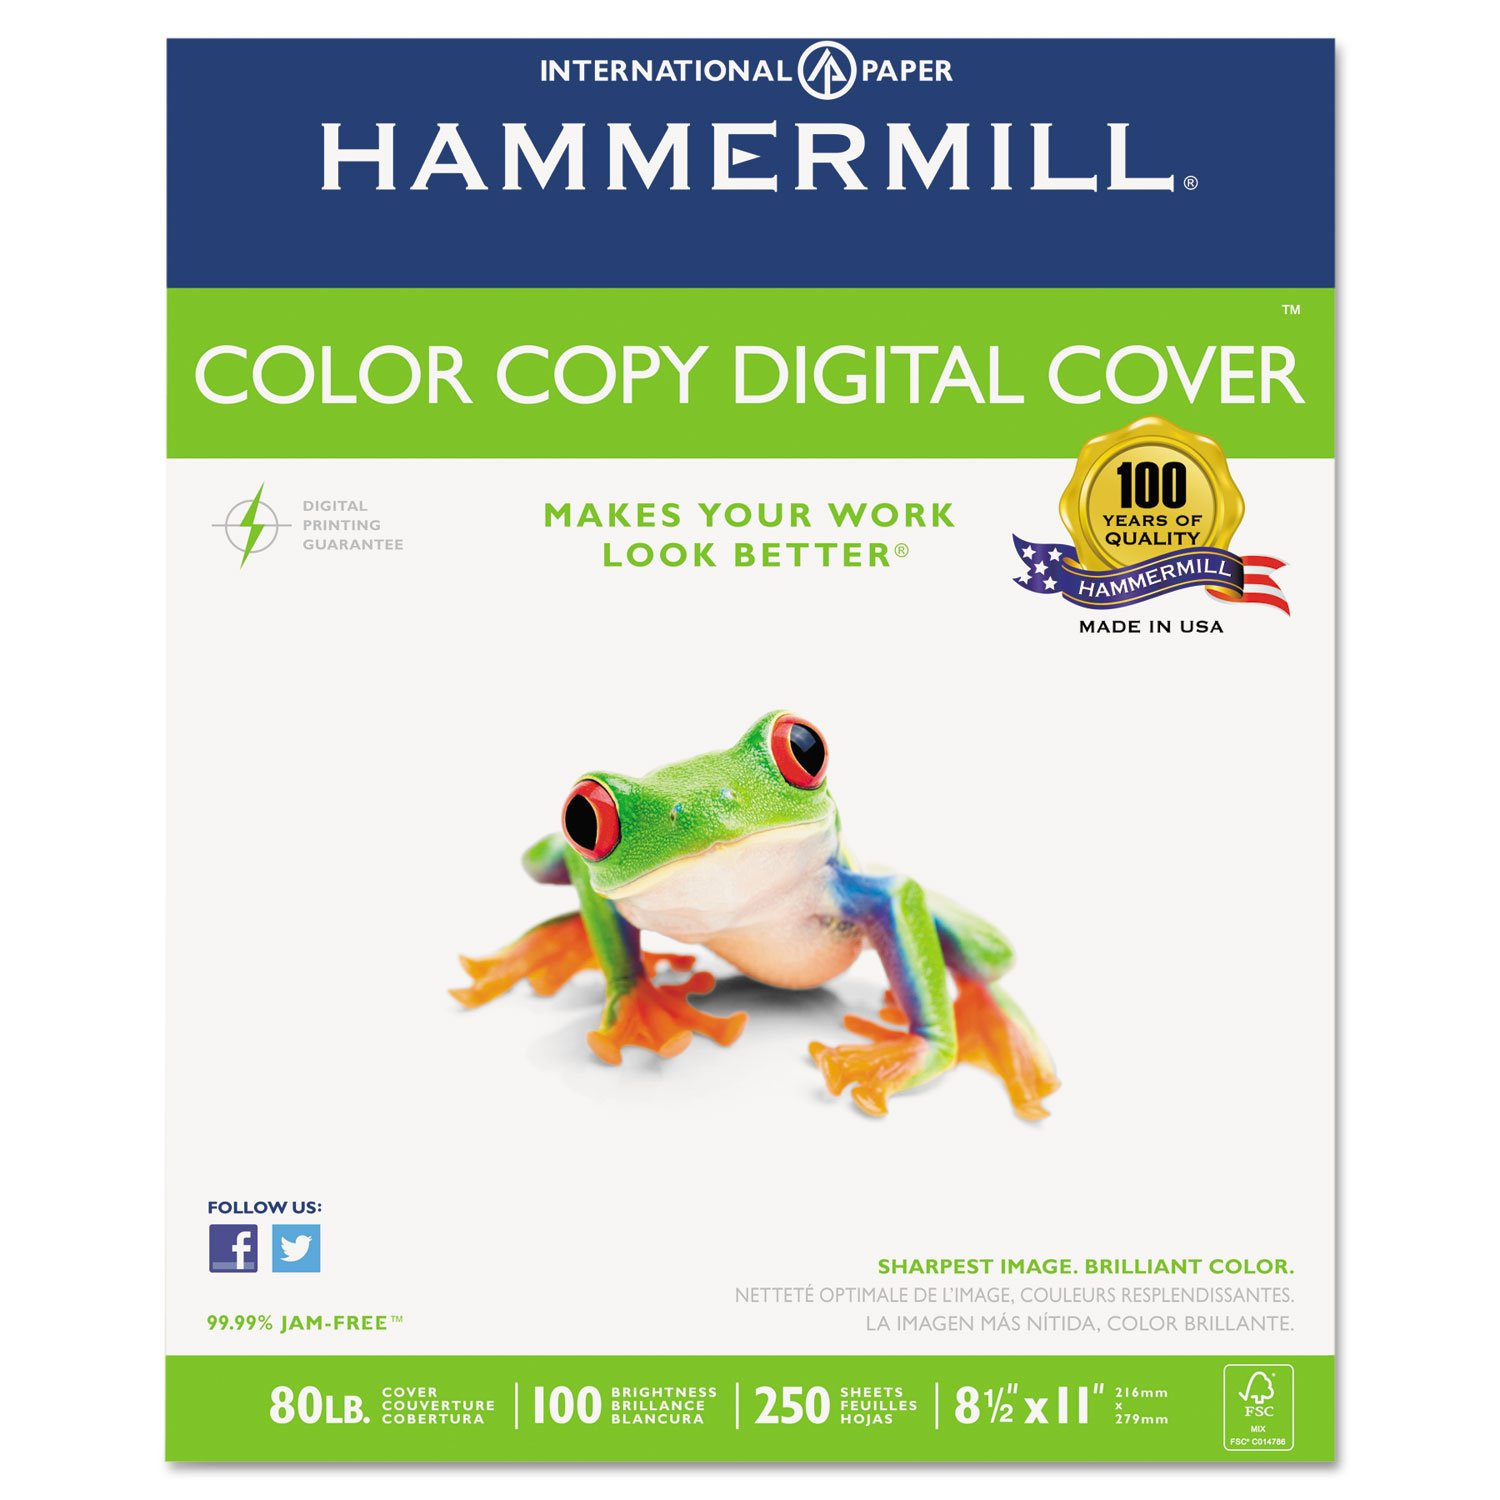 Hammermill 120023 Copier Digital Cover Stock, 80 lbs, 8 1/2 x 11, Photo White, 250 Sheets by Hammermill